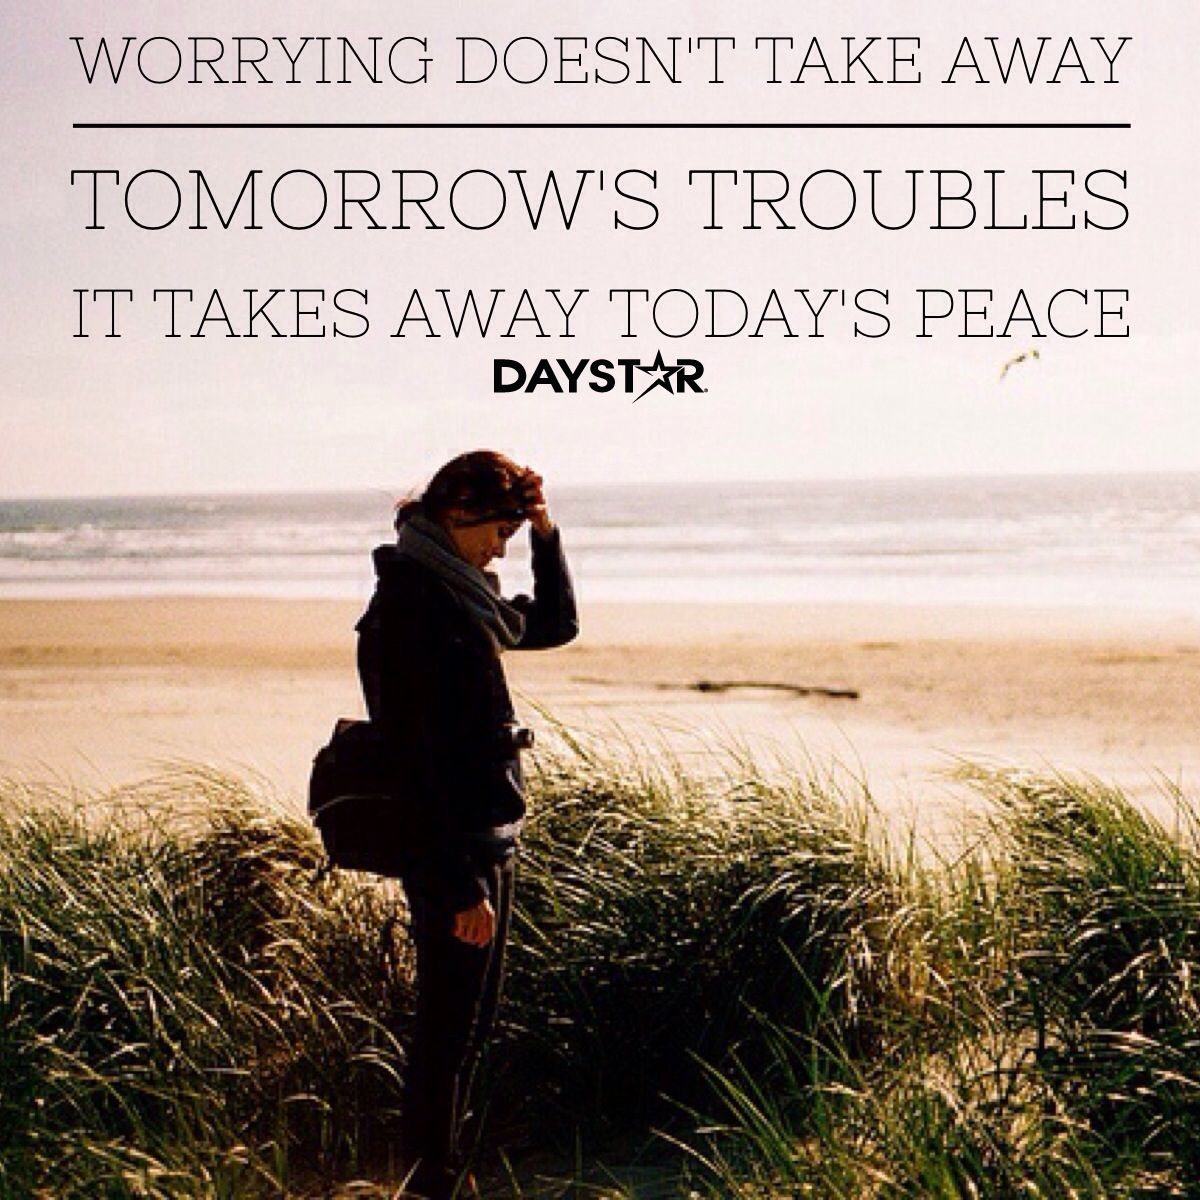 Worrying doesn't take away tomorrow's troubles. It takes away today's peace. [Daystar.com]